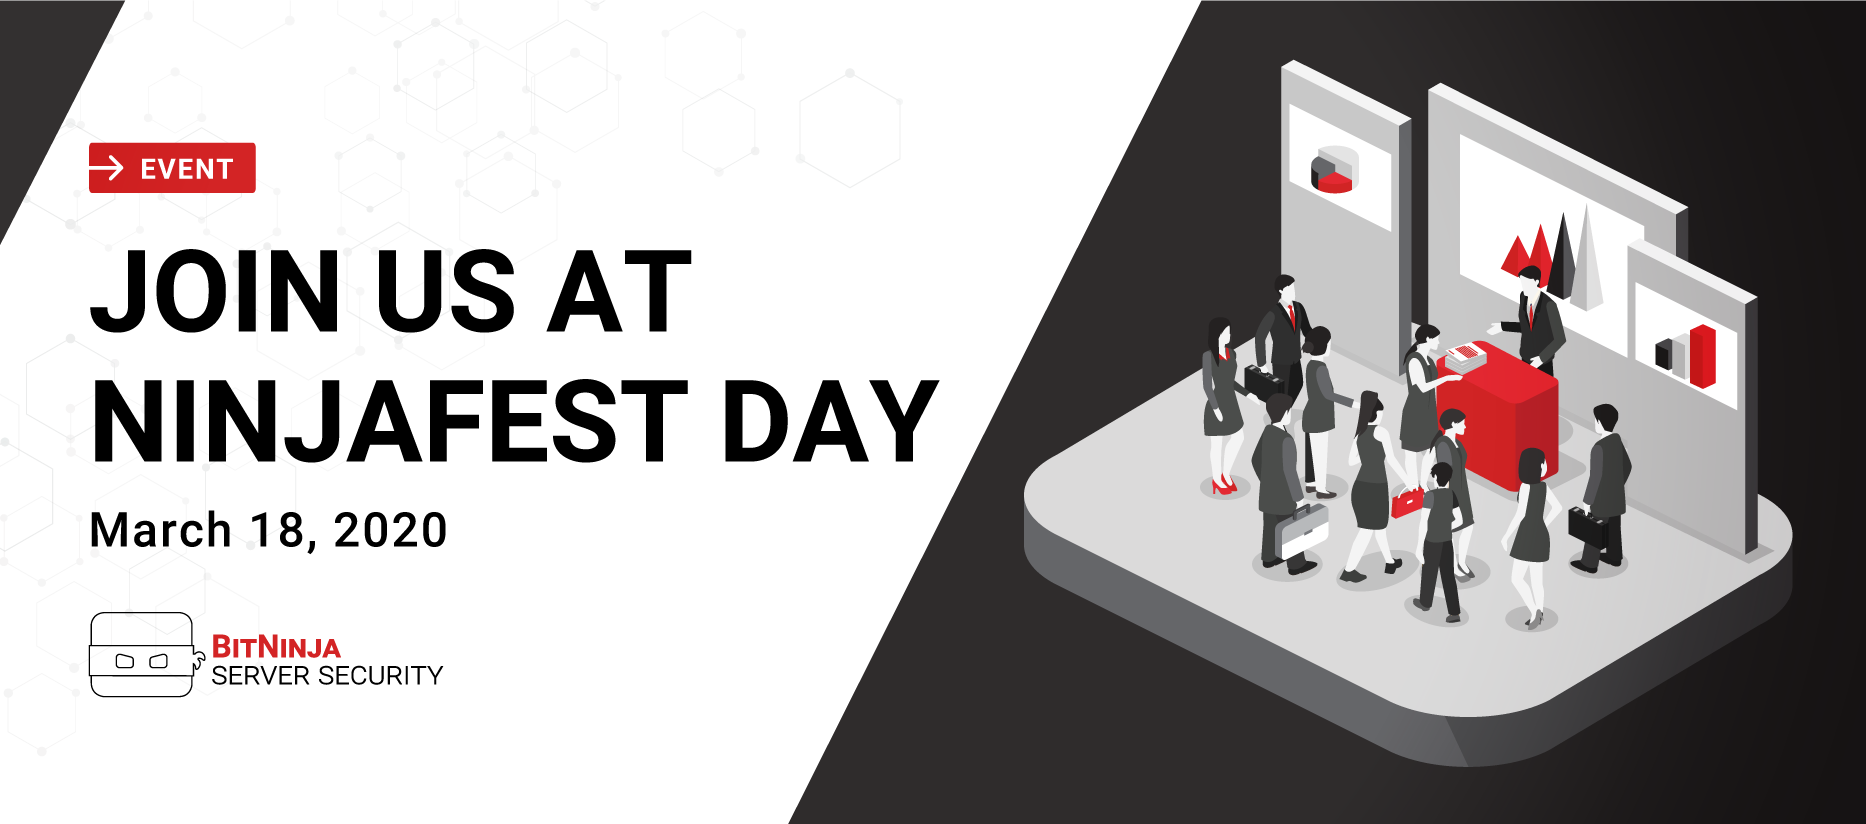 #CloudFest2020 cancelled – NinjaFest Day is here